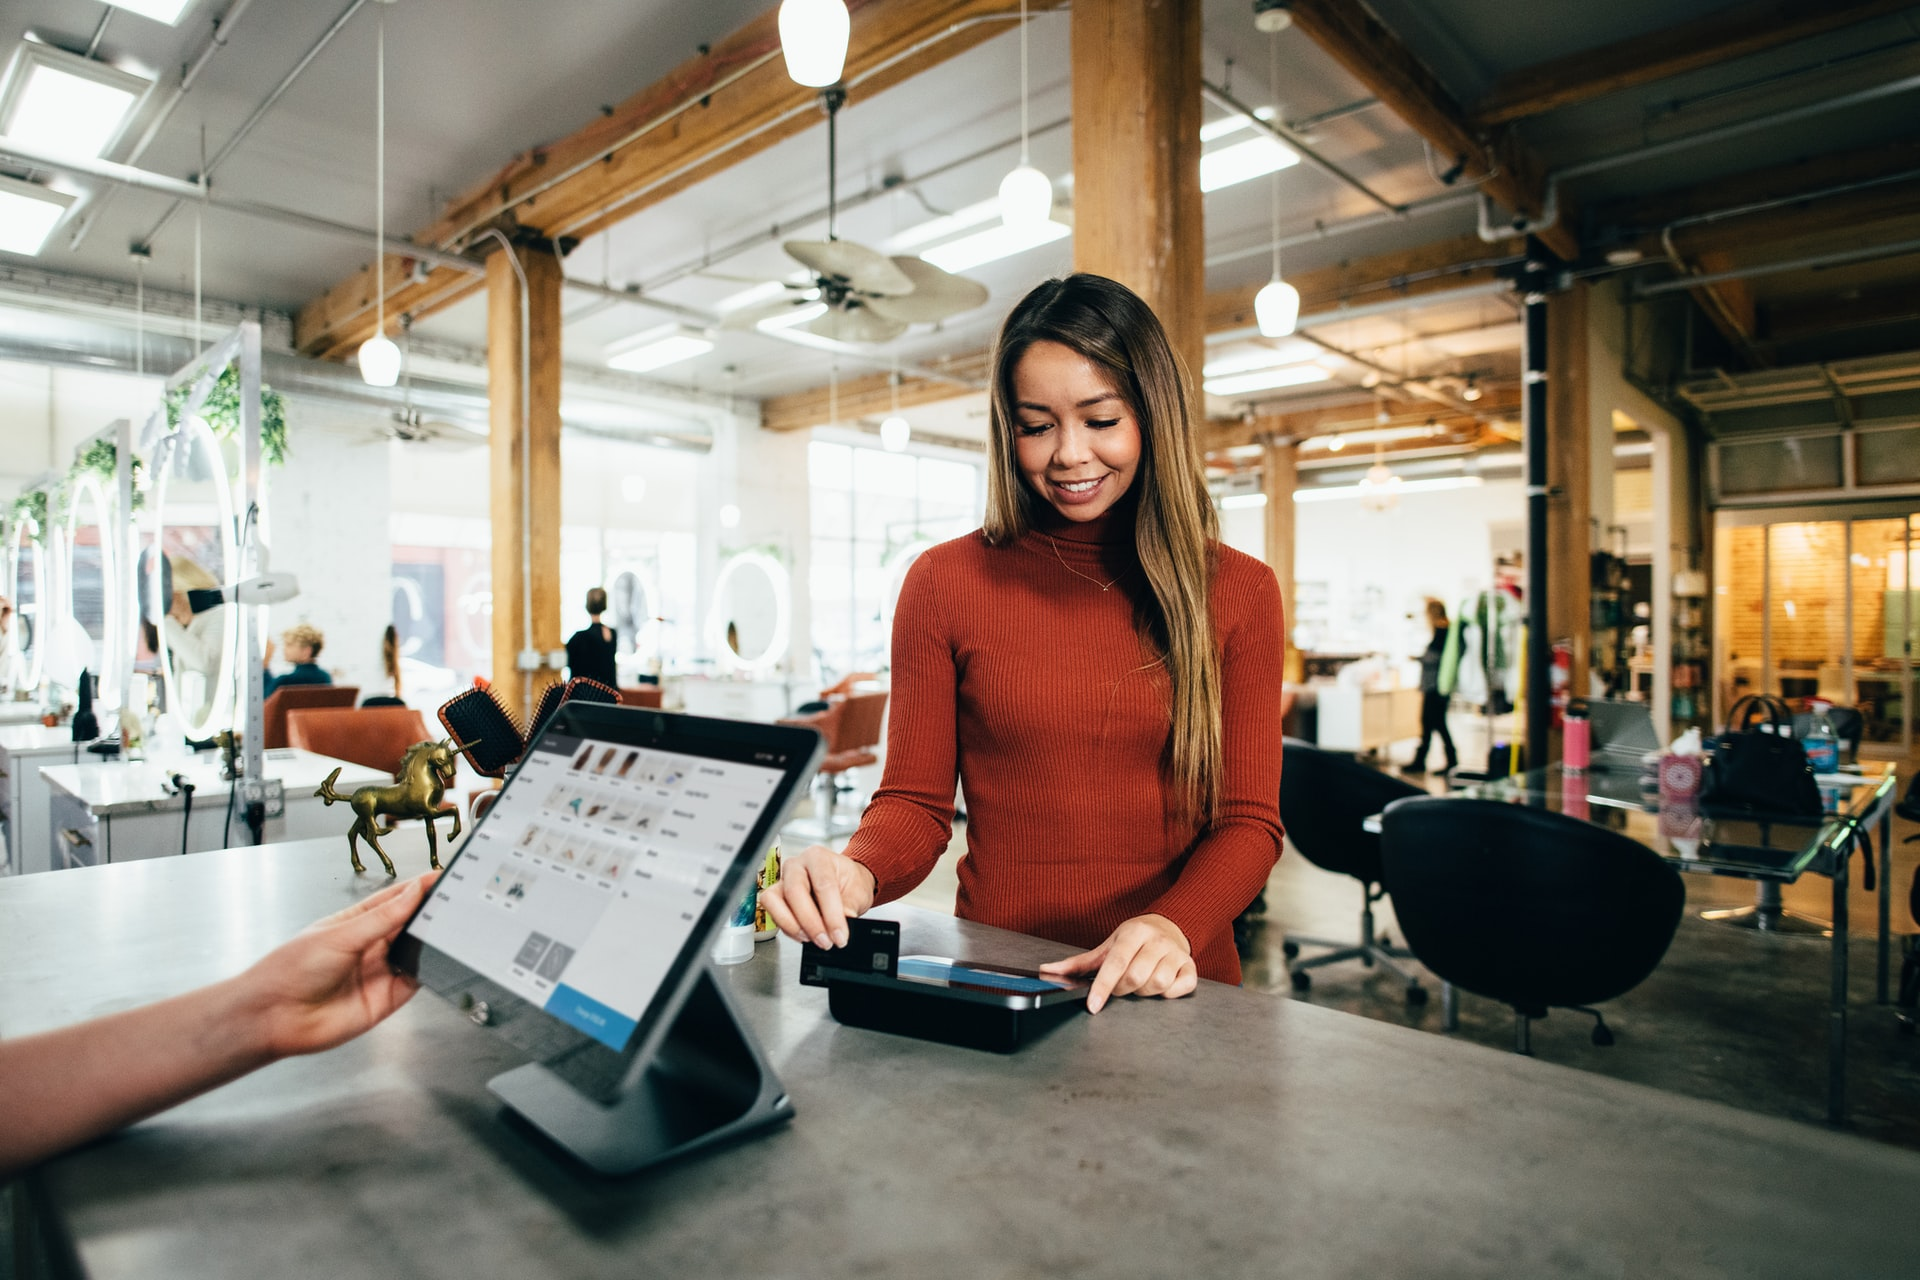 Smart Technology Transforms Retail Operations